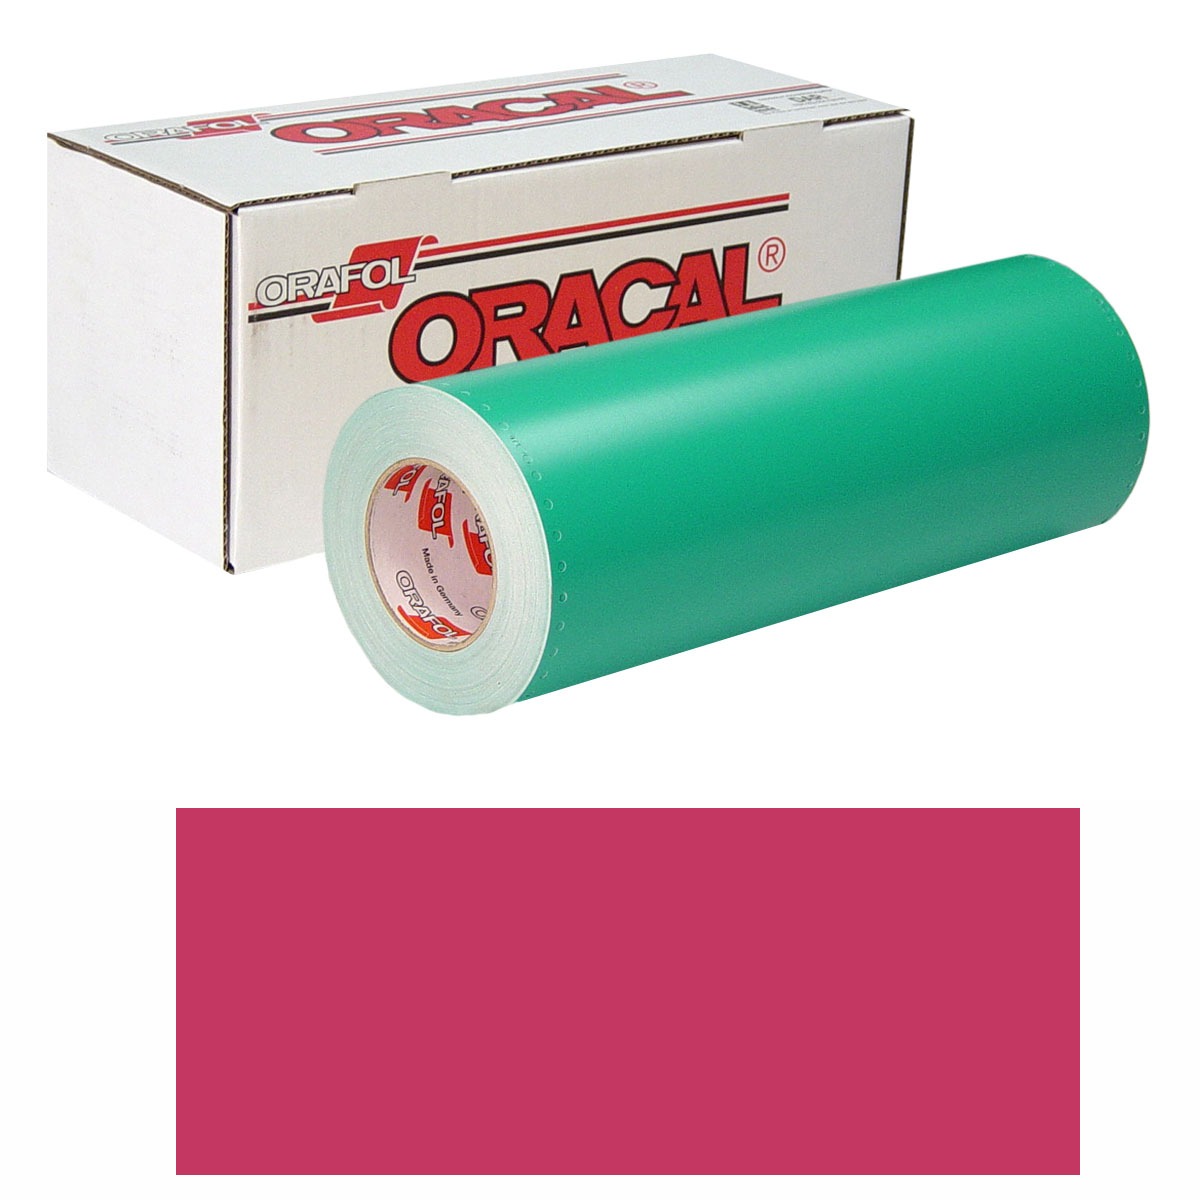 ORACAL 8500 30in X 50yd 031 Red